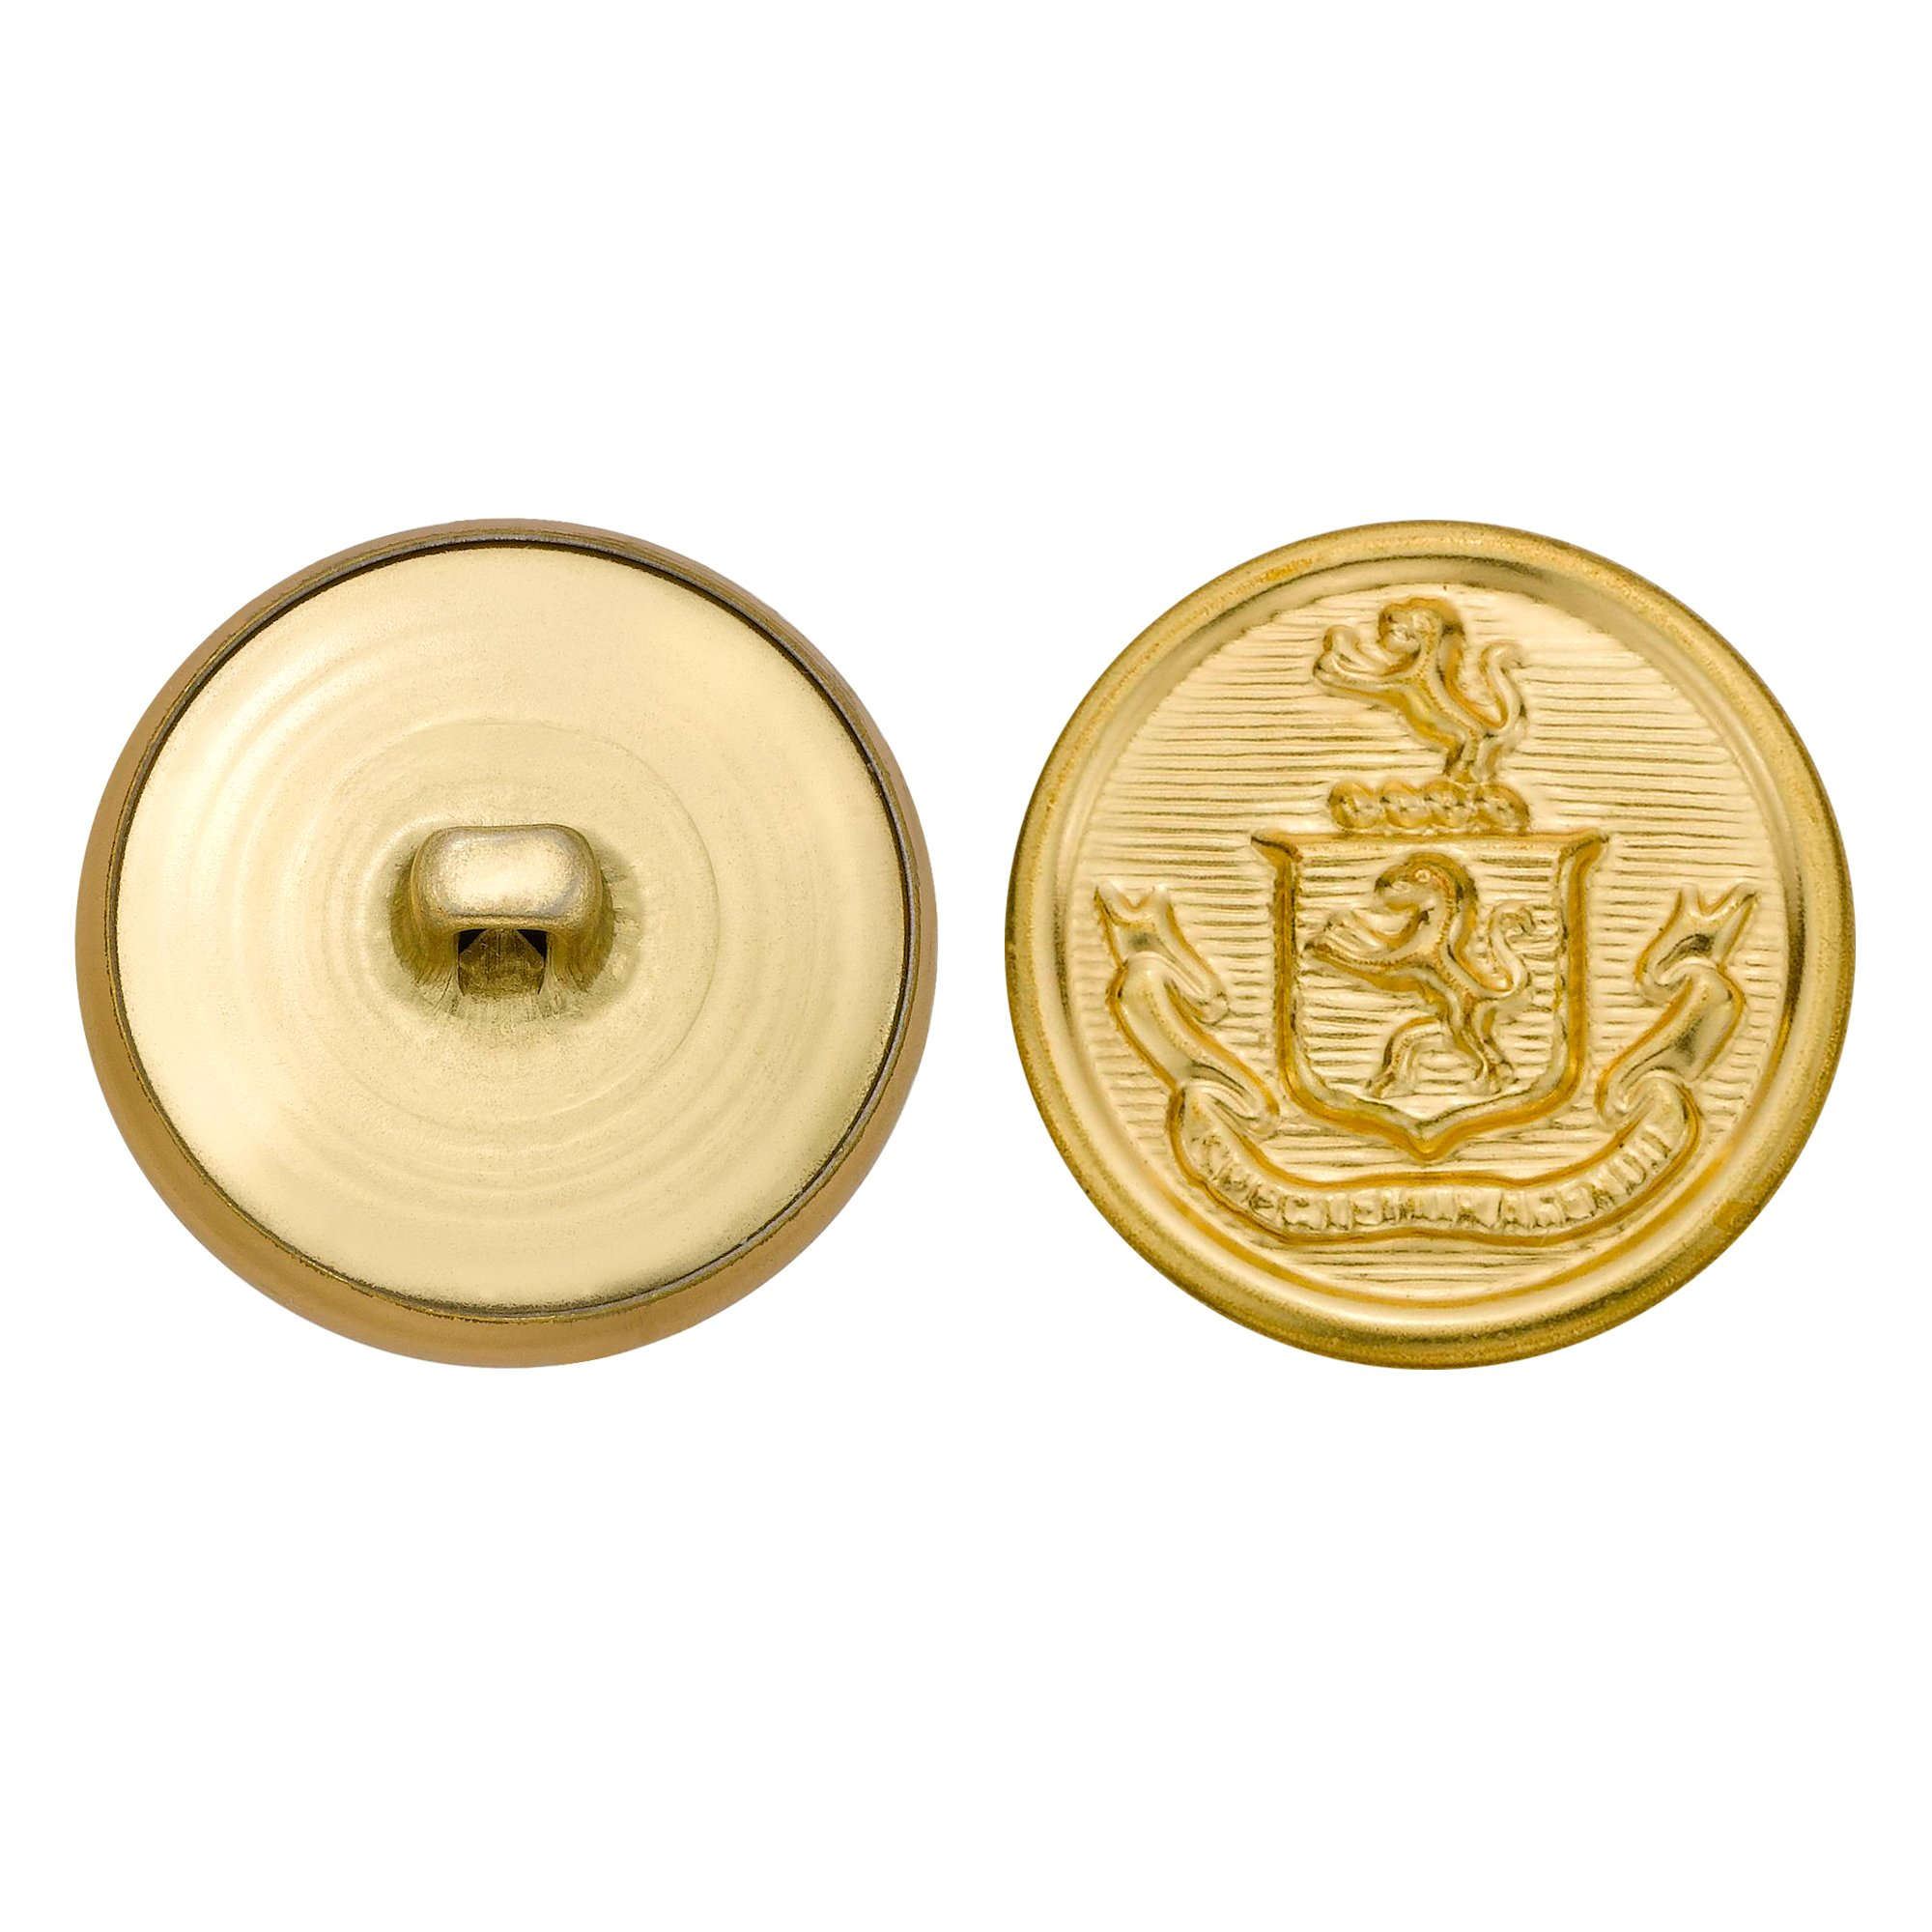 C&C Metal Products 5257 Crest Metal Button, Size 40 Ligne, Gold, 36-Pack